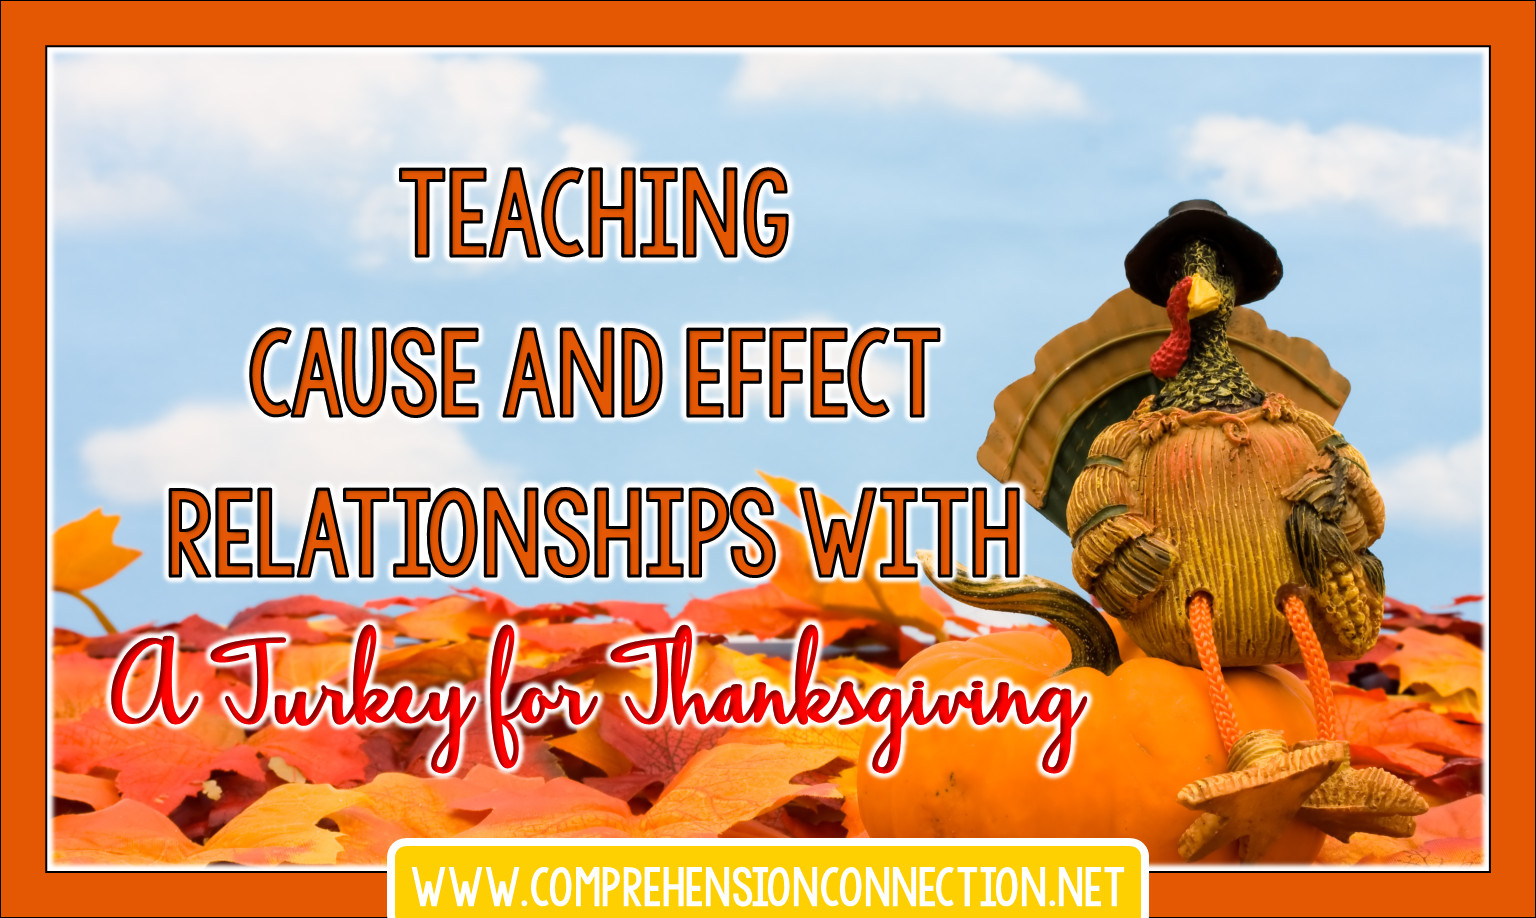 A Turkey For Thanksgiving By Eve Bunting  Teaching Cause and Effect Relationships with A Turkey for